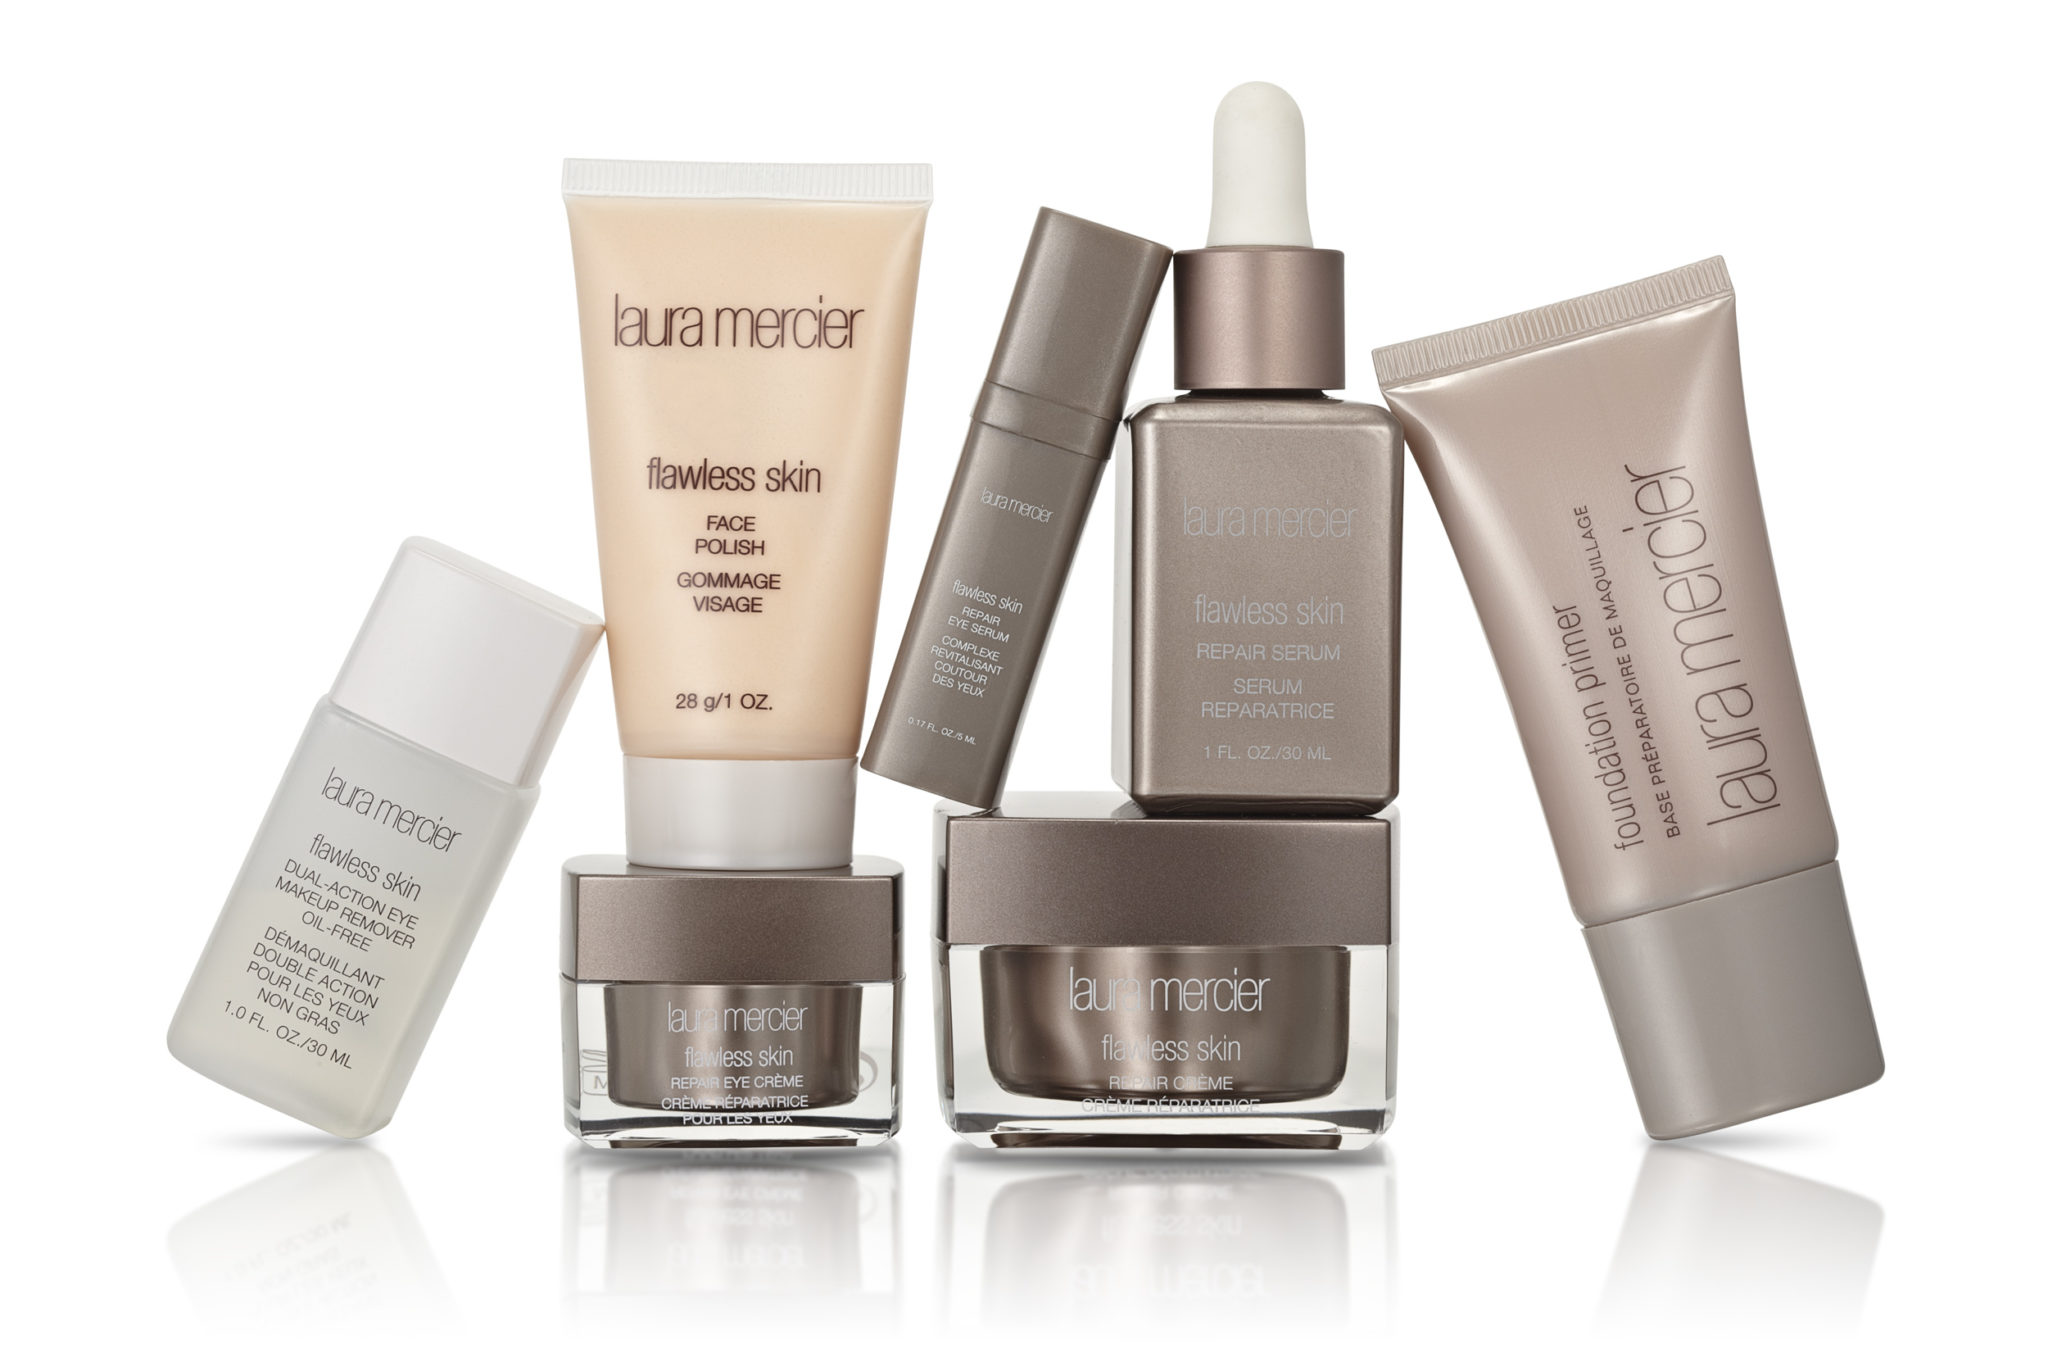 e-commerce product photograph of seven skin care products including serums, cremes, and foundation in a dynamic group composition on white with a reflection